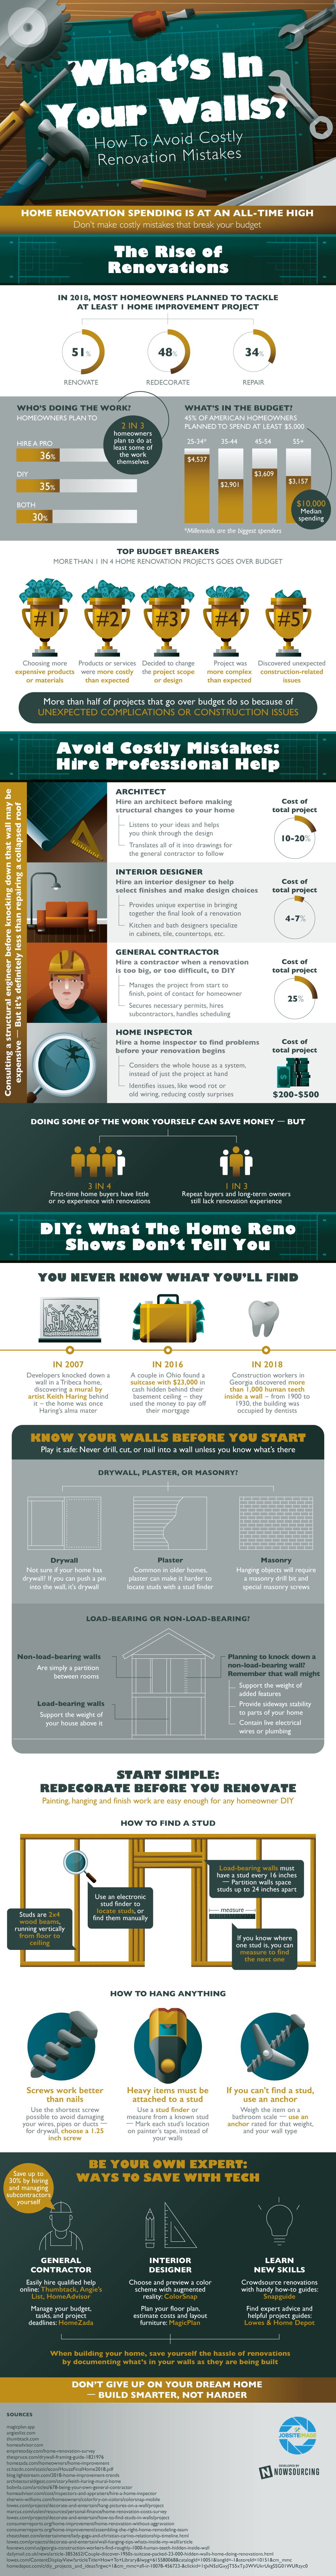 What's In Your Walls? - Infographic